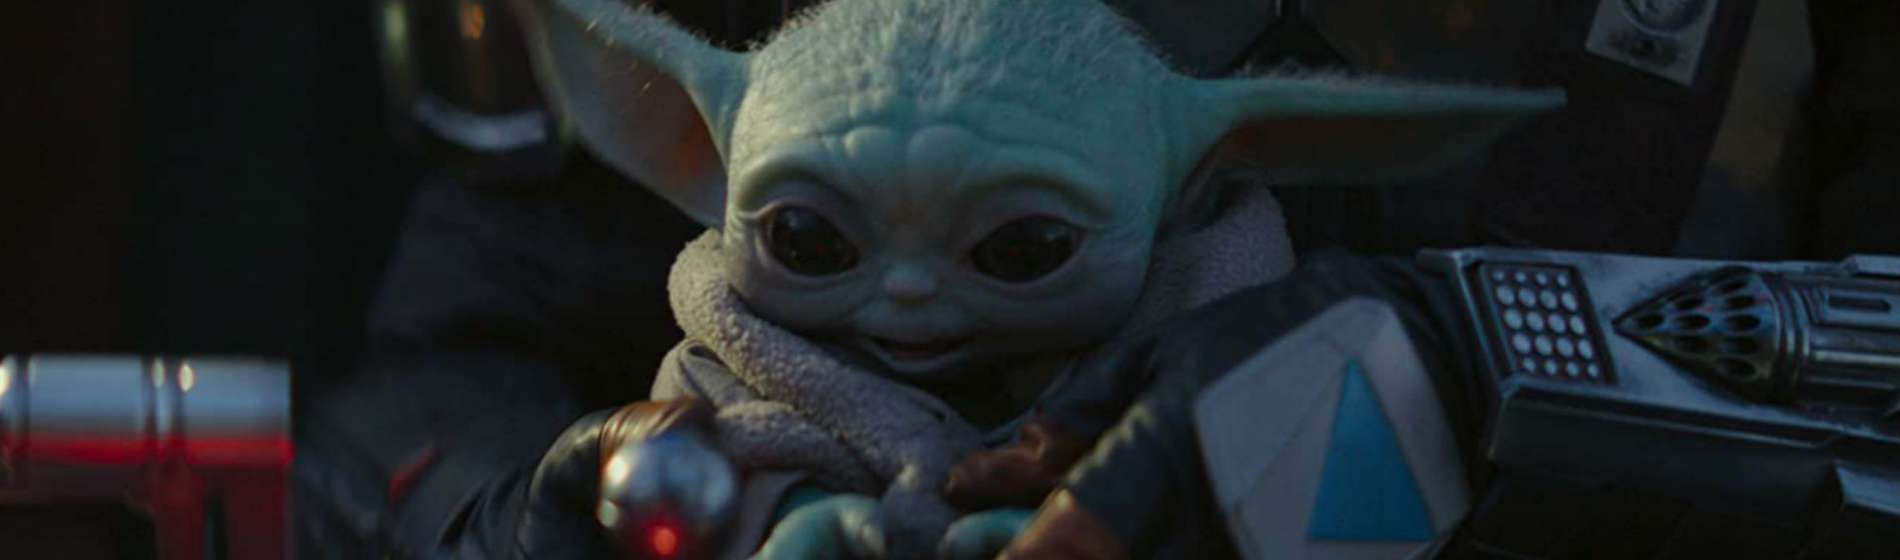 the-mandalorian-the-child-aka-baby-yoda